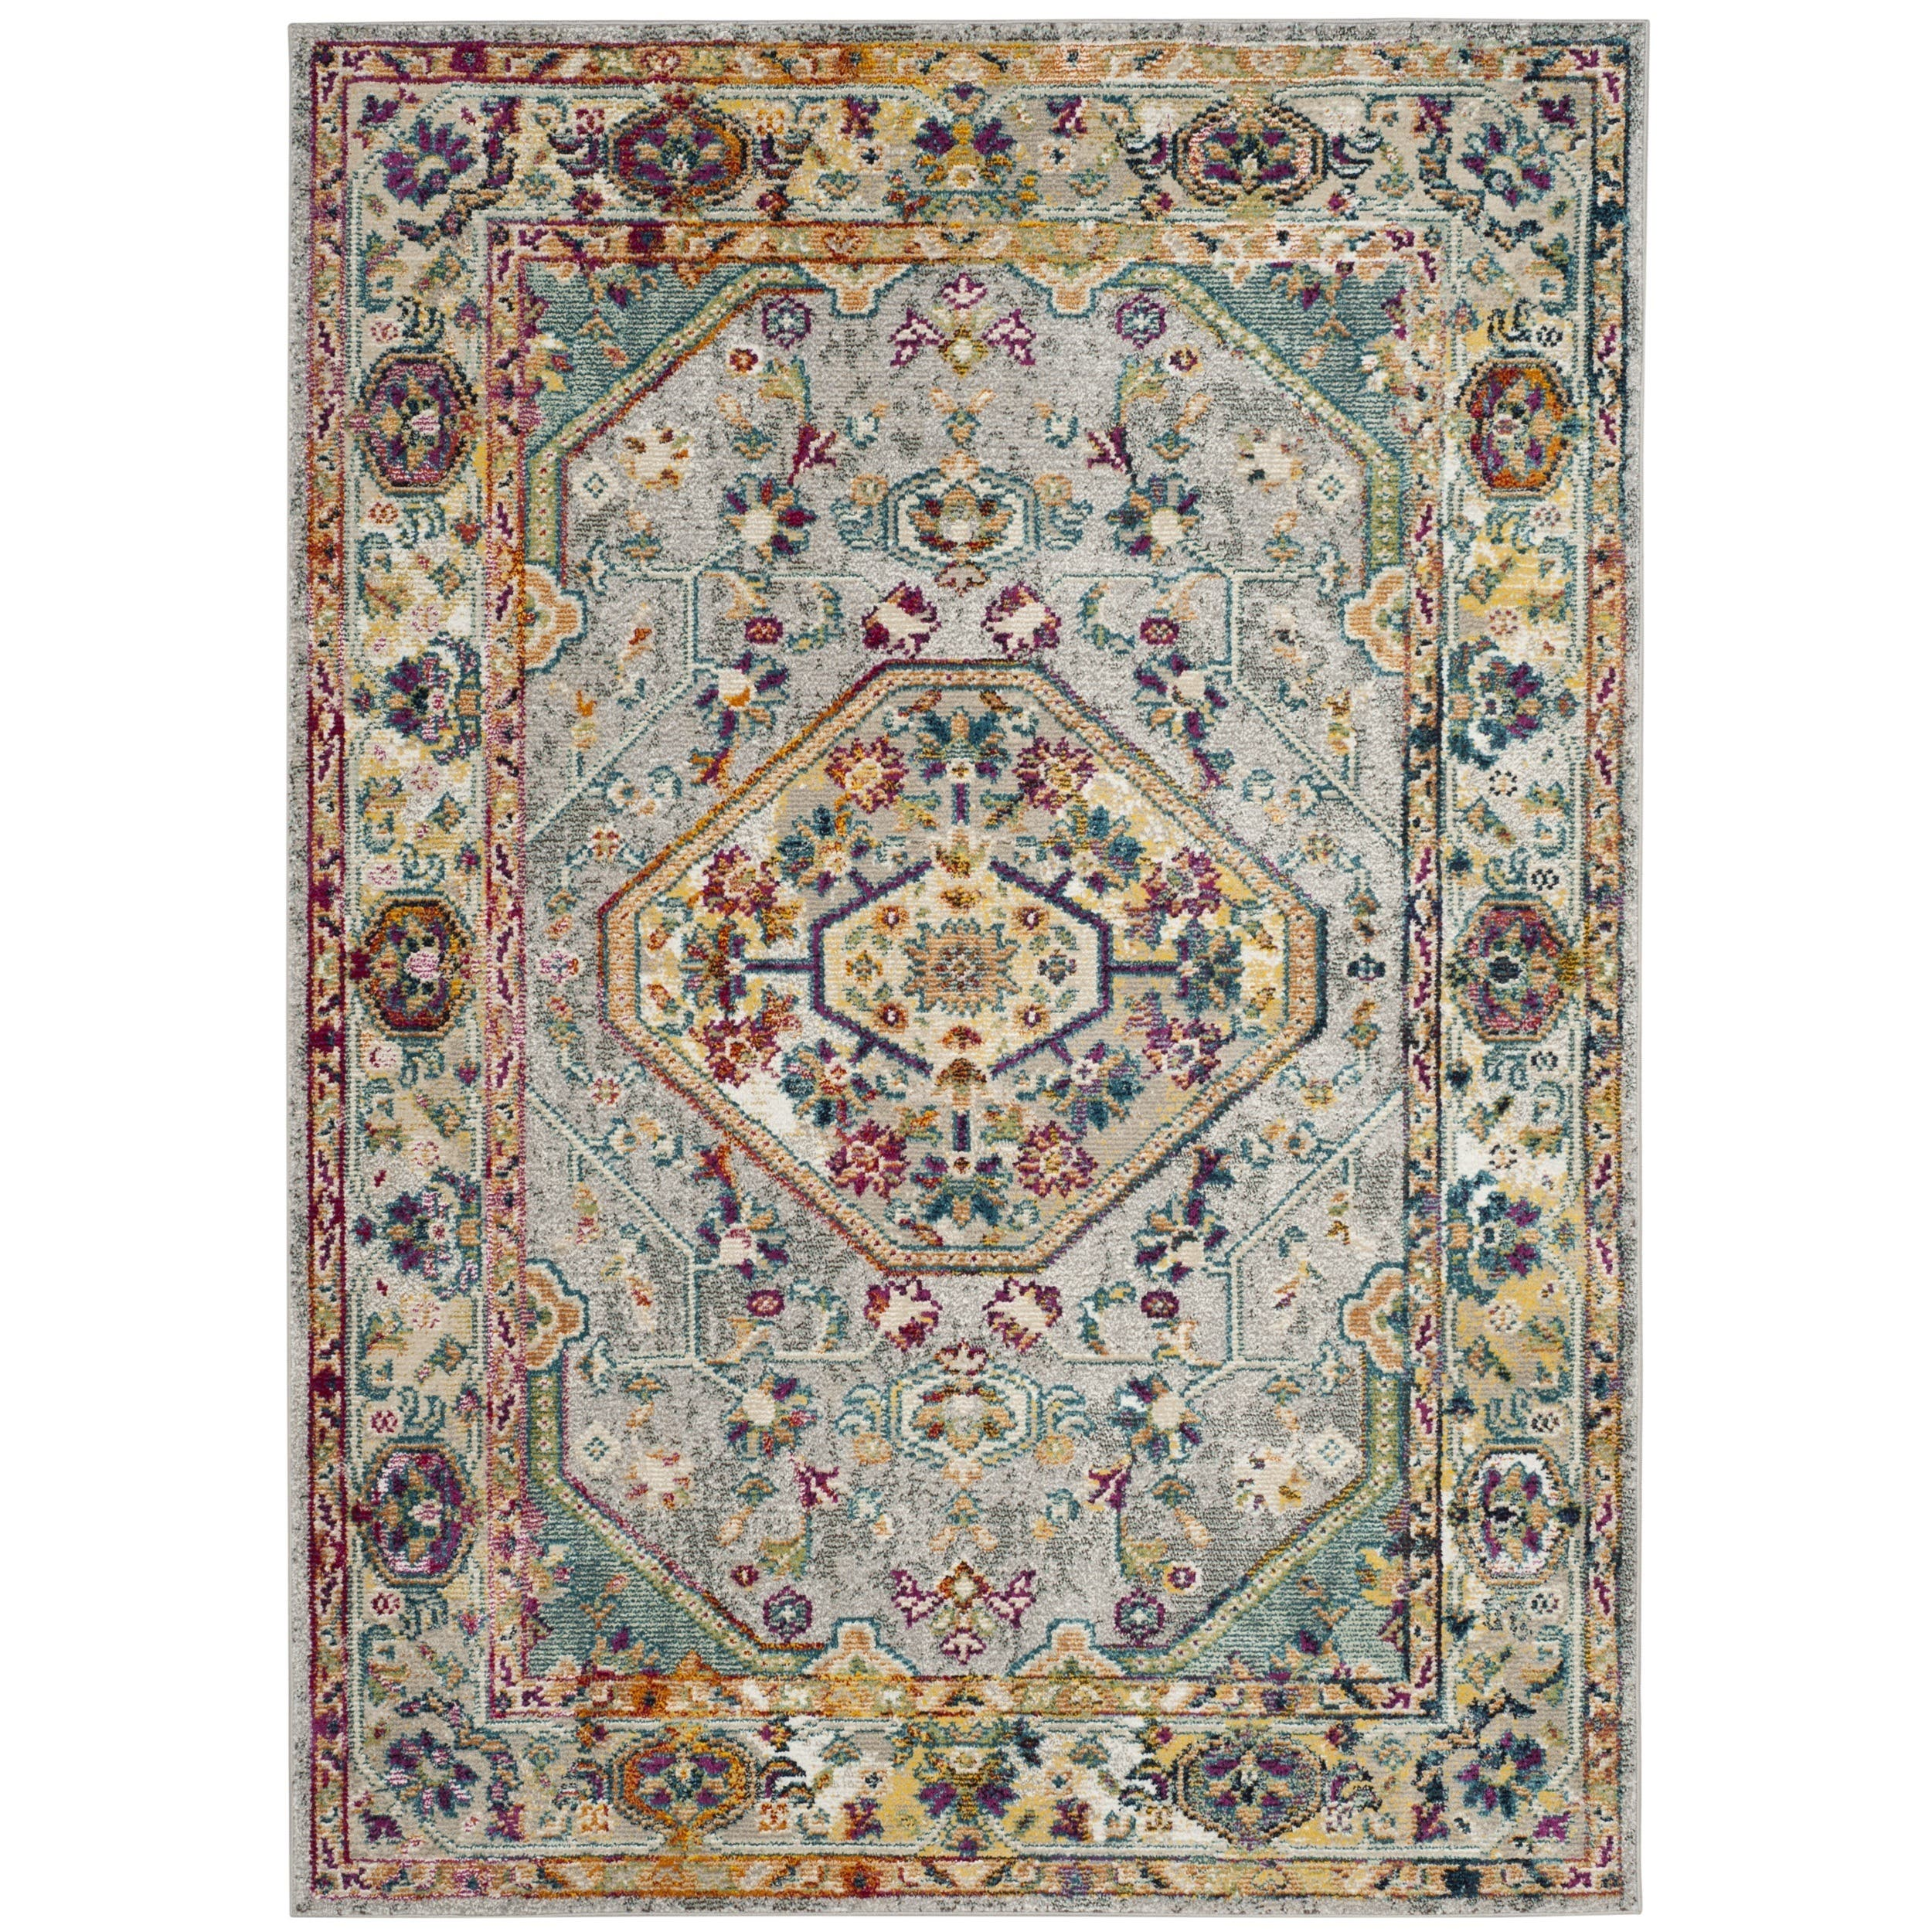 7x9 - 10x14 Rugs For Less